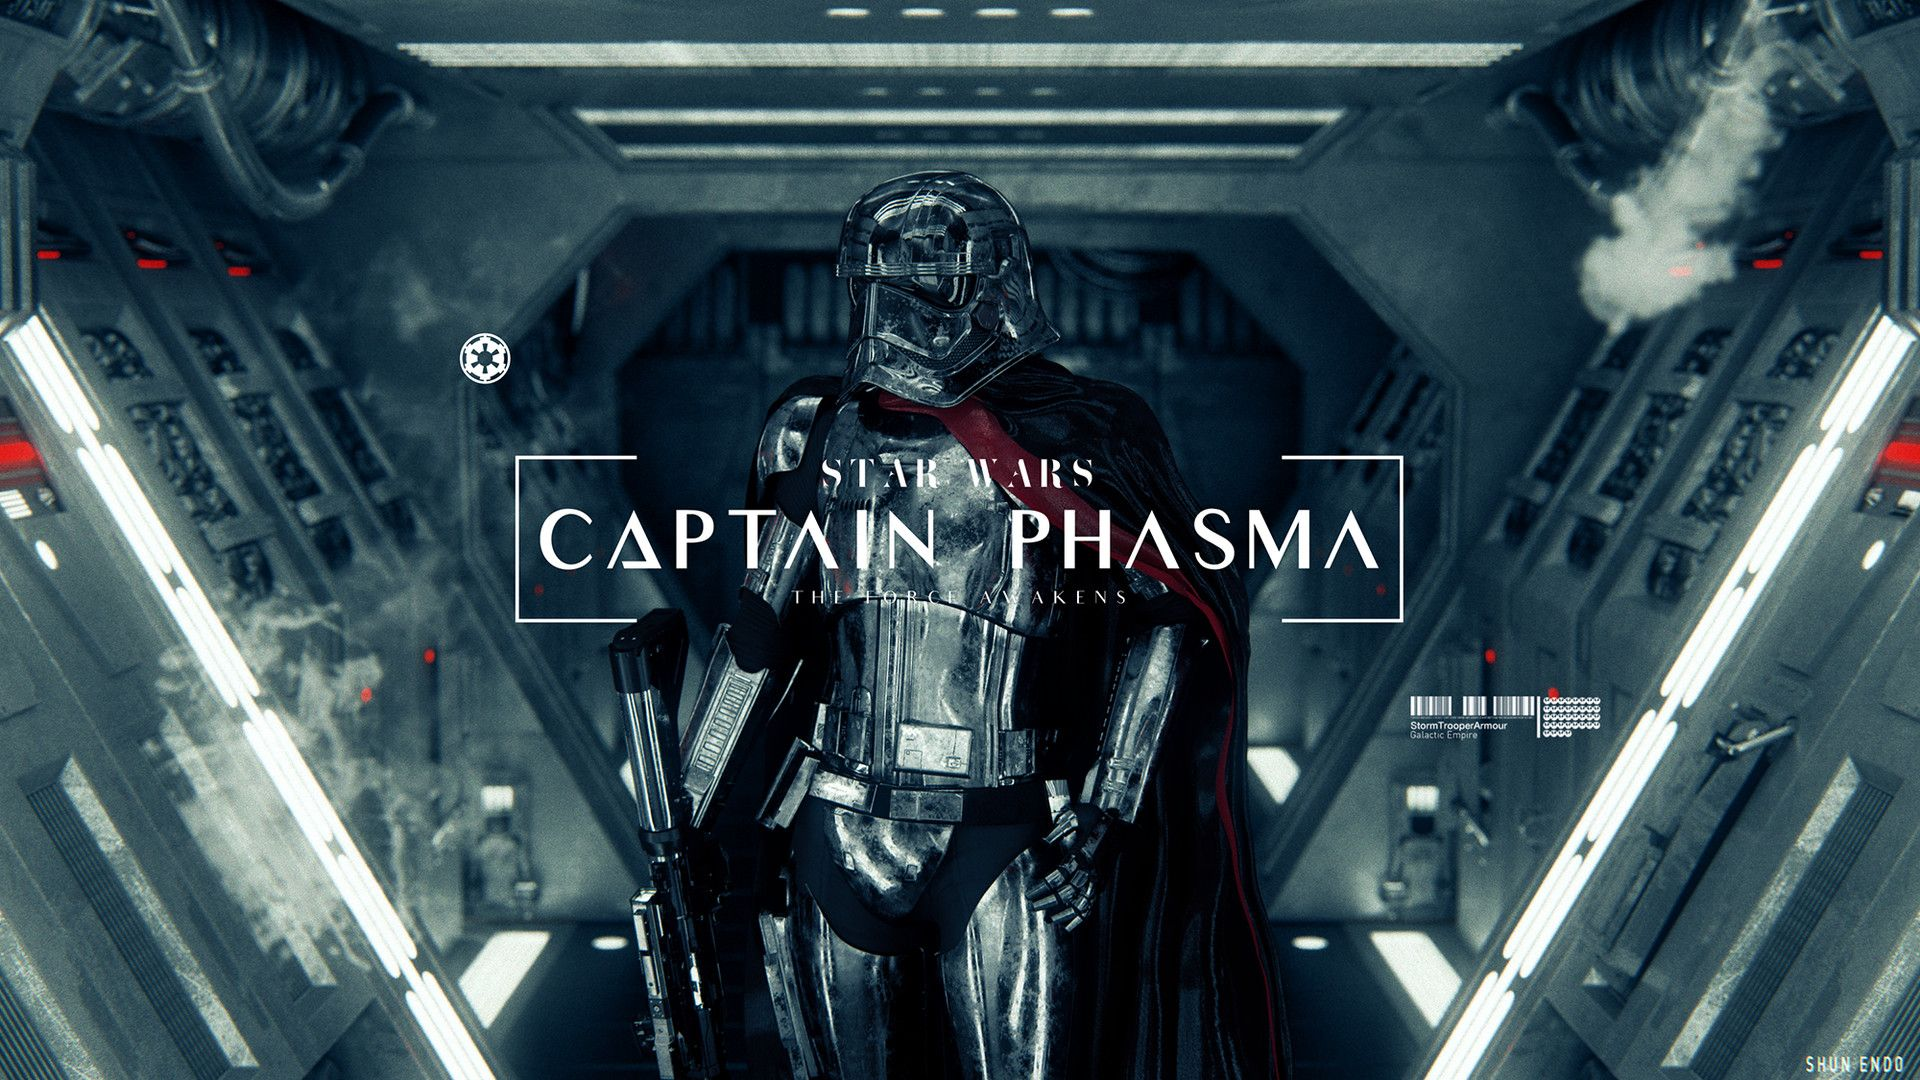 shun endo - Captain Phasma